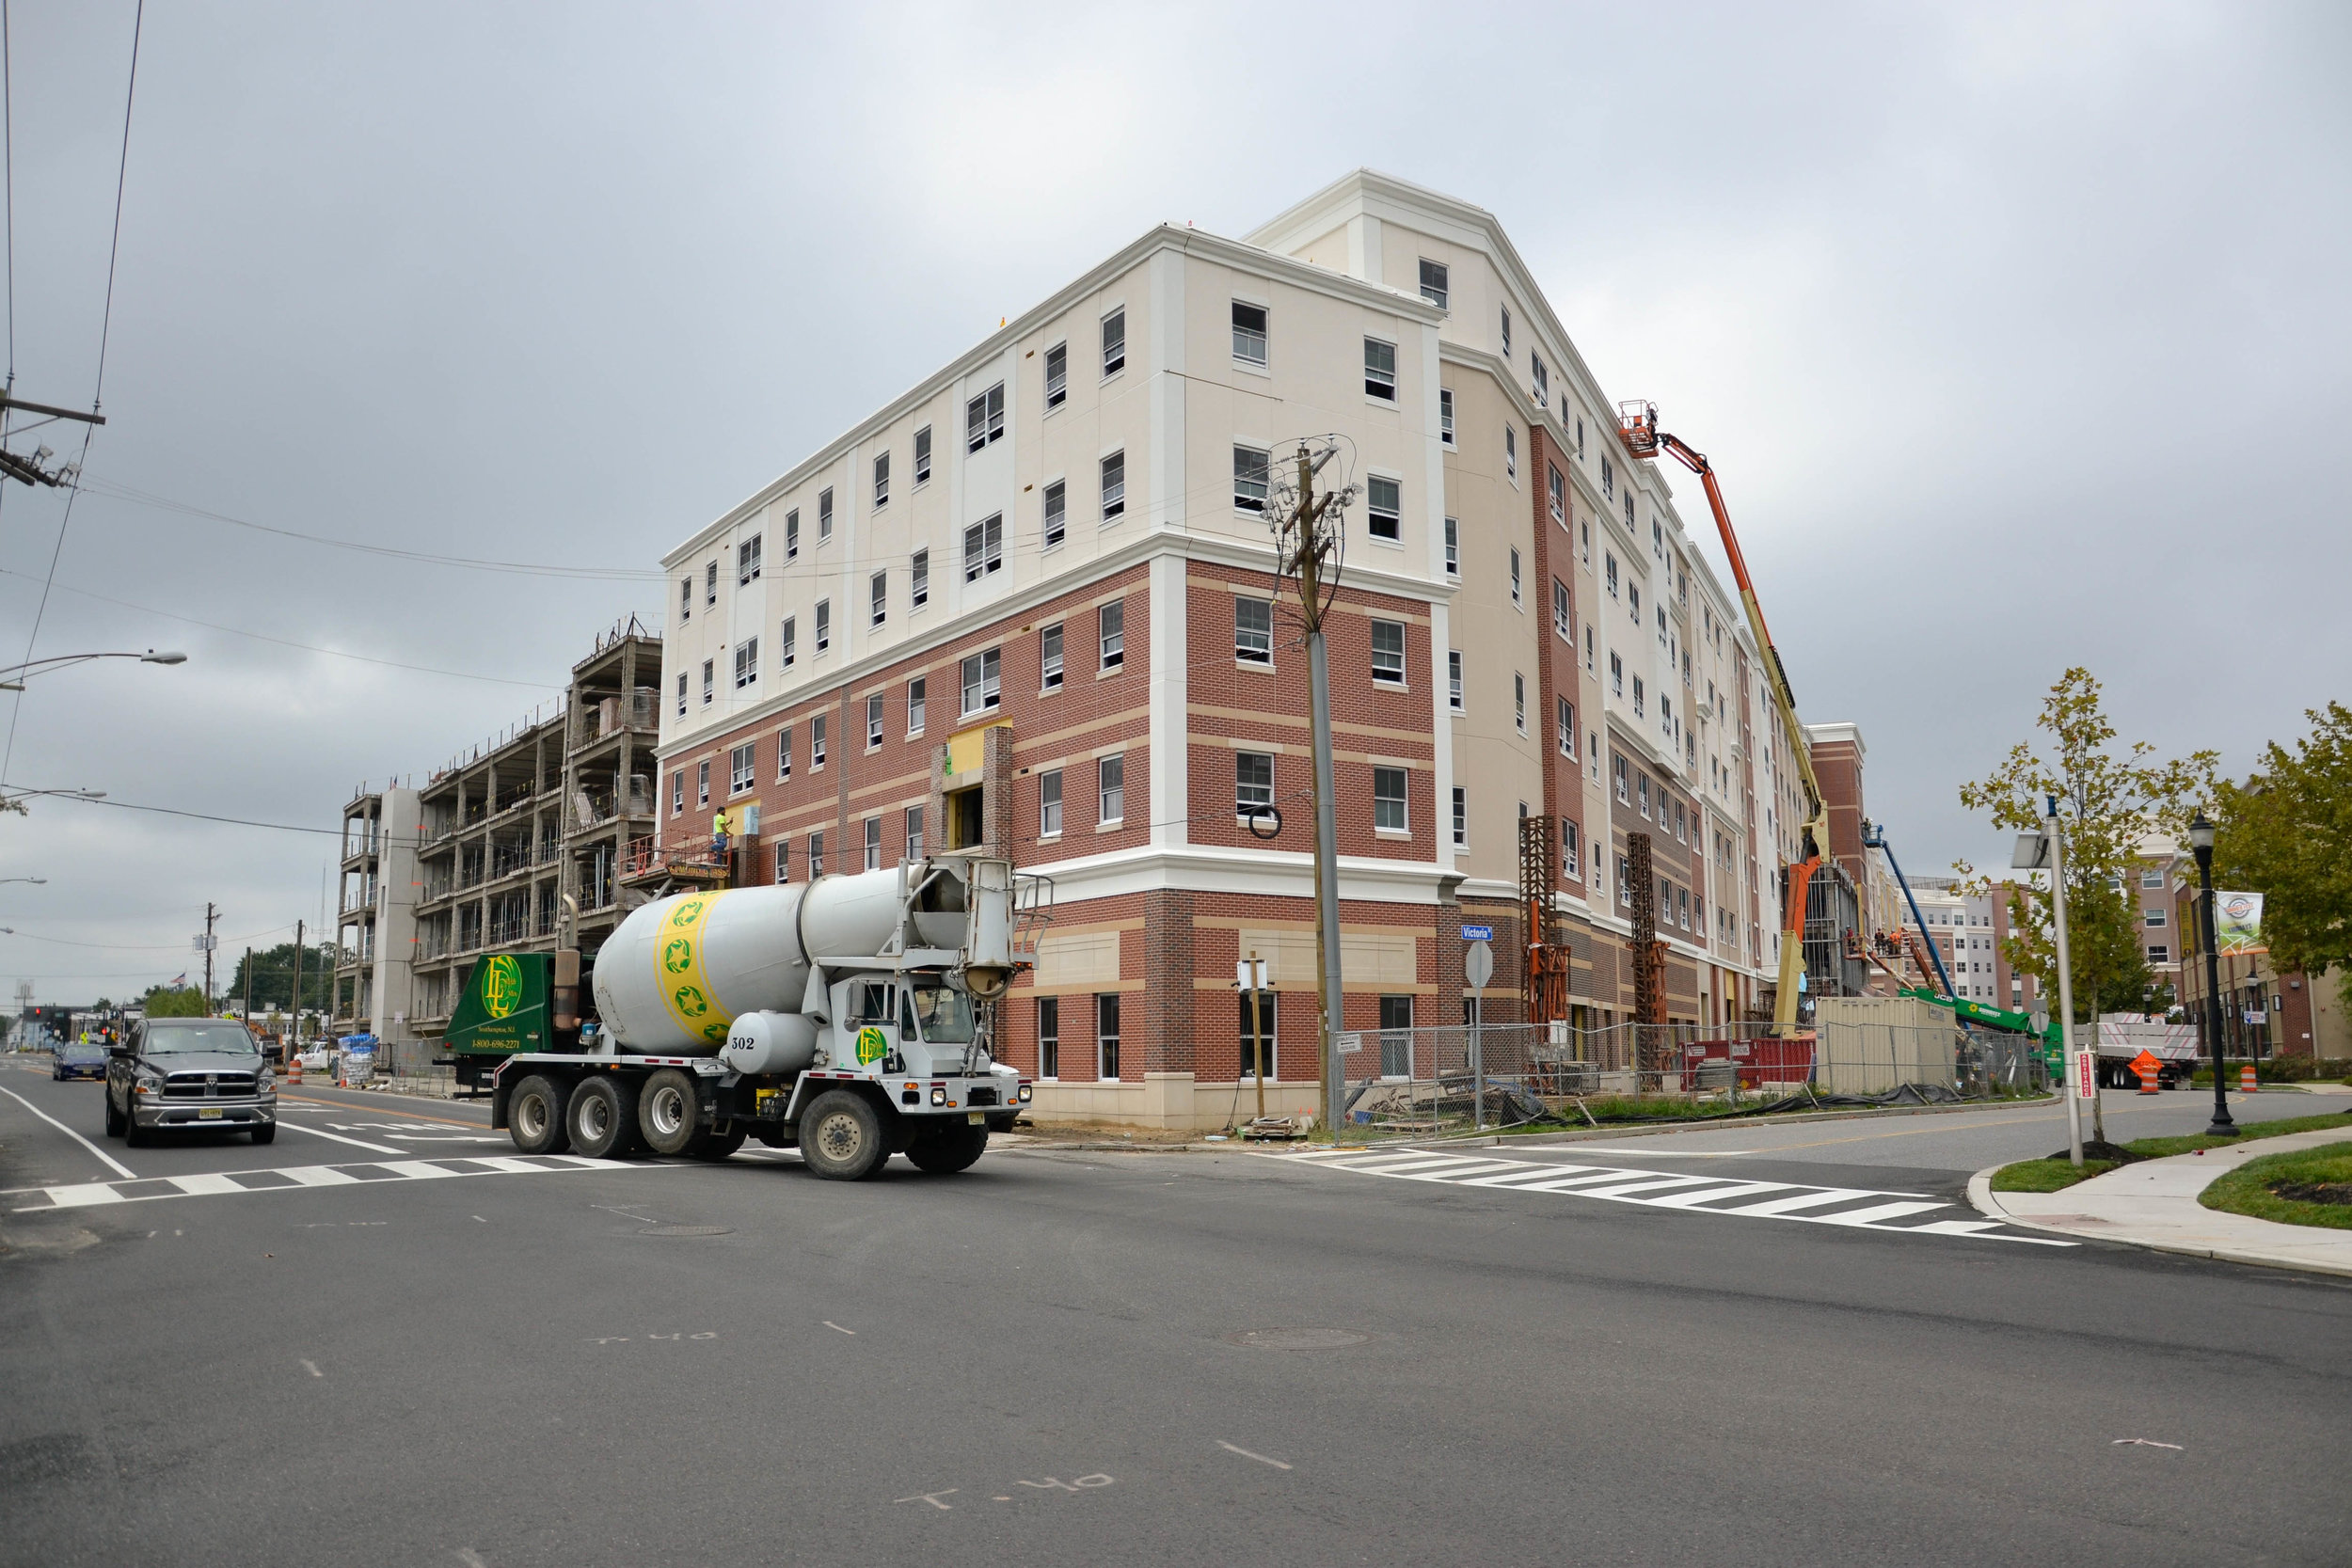 Recent building openings part of larger university expansion